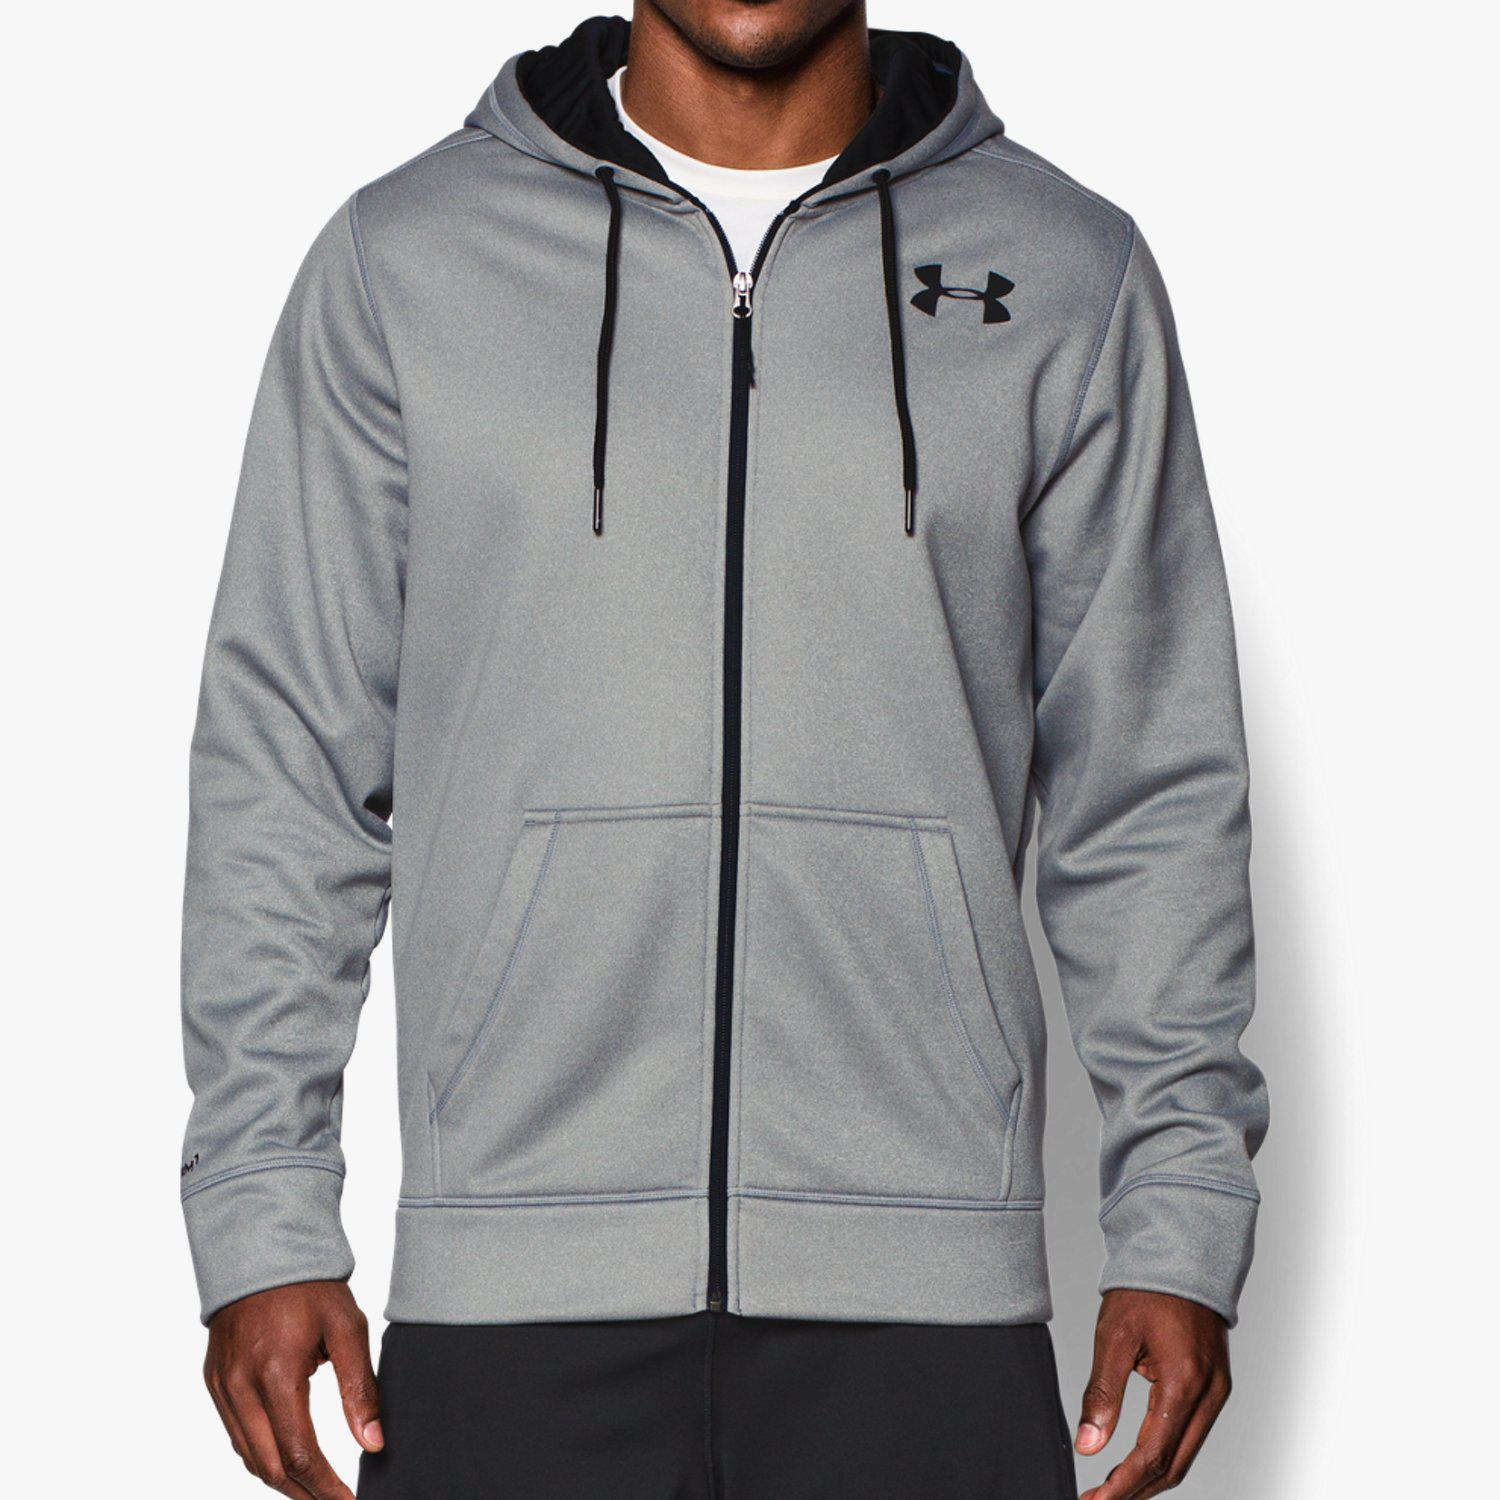 Under Armour Mens Armour Fleece UA Full Zip Hoodie